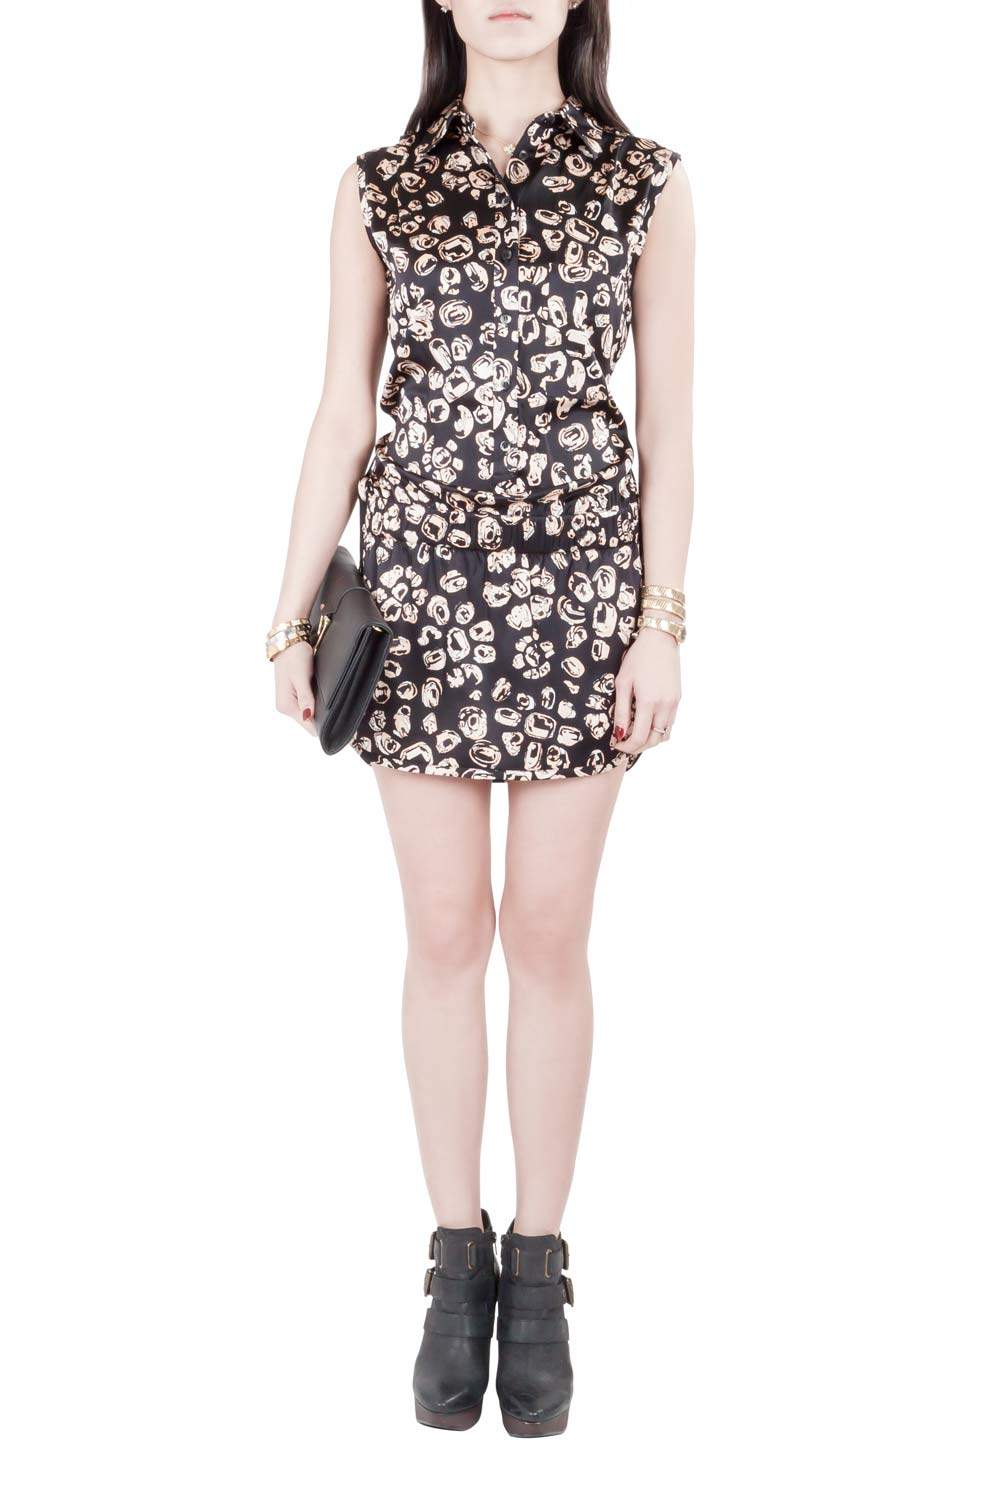 Thakoon Addition Black and Blush Silk Abstract Print Shirt Top Playsuit S